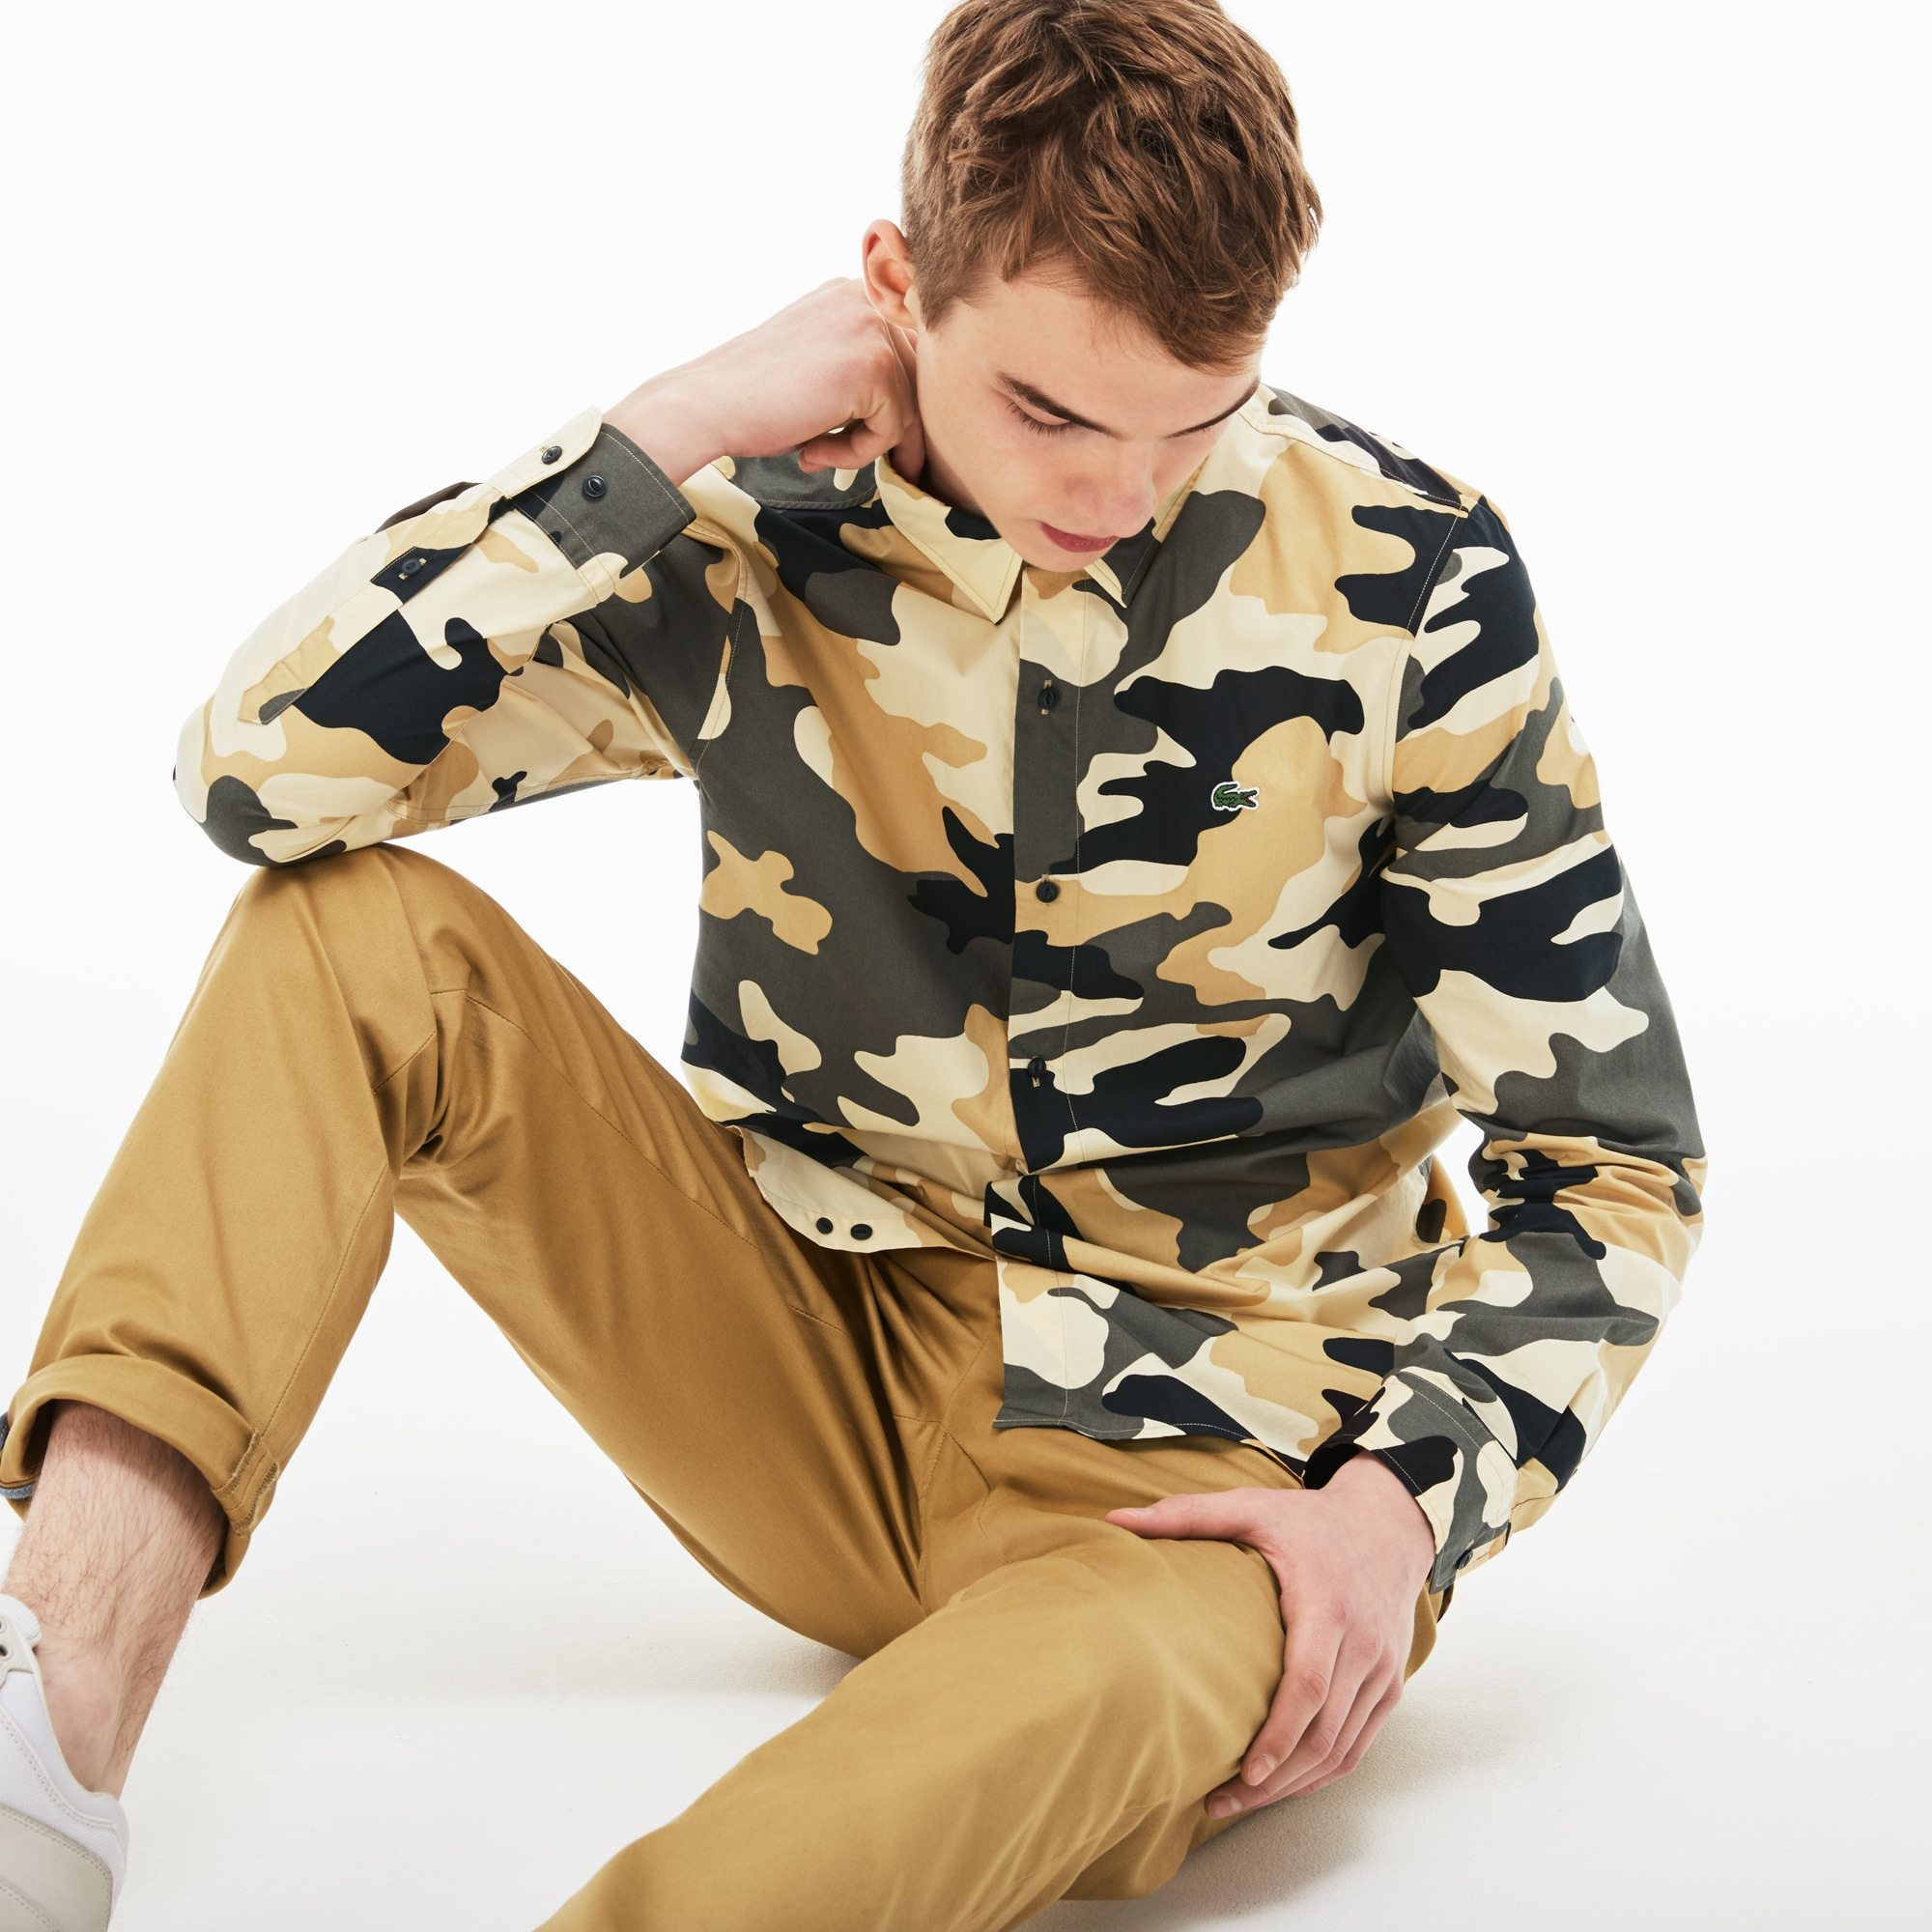 Men's LIVE Slim Fit Camouflage Print Poplin Shirt